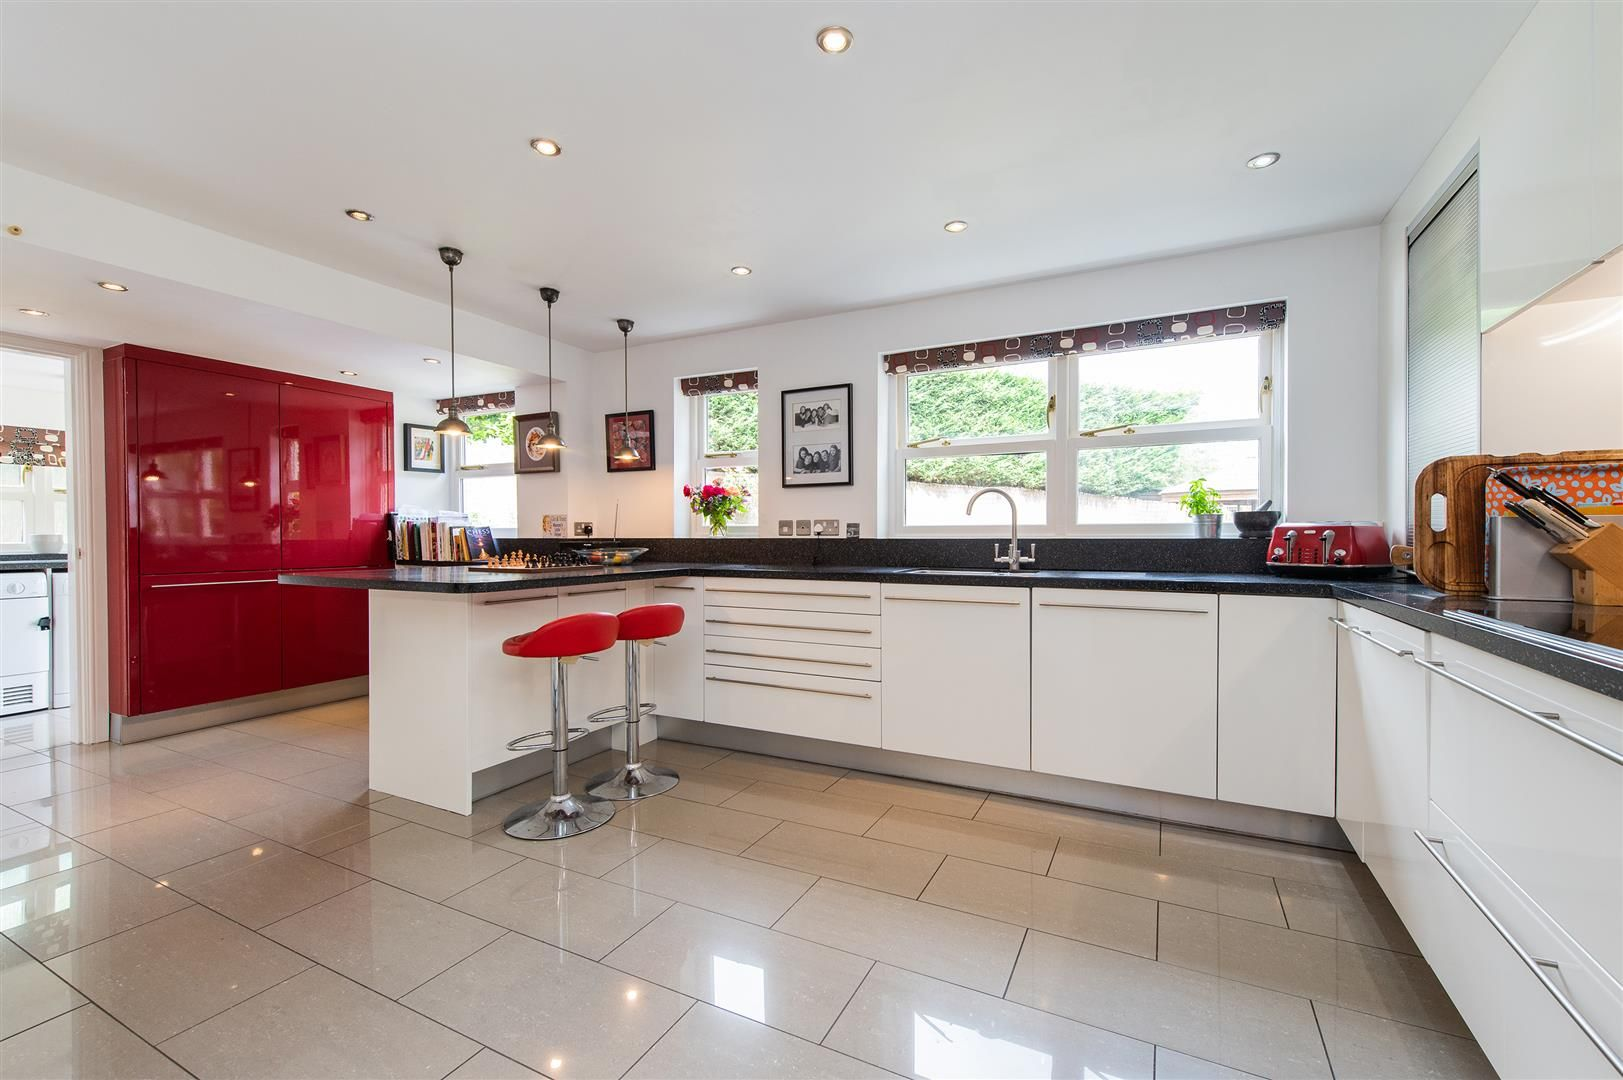 5 bed house for sale in Hagley 12